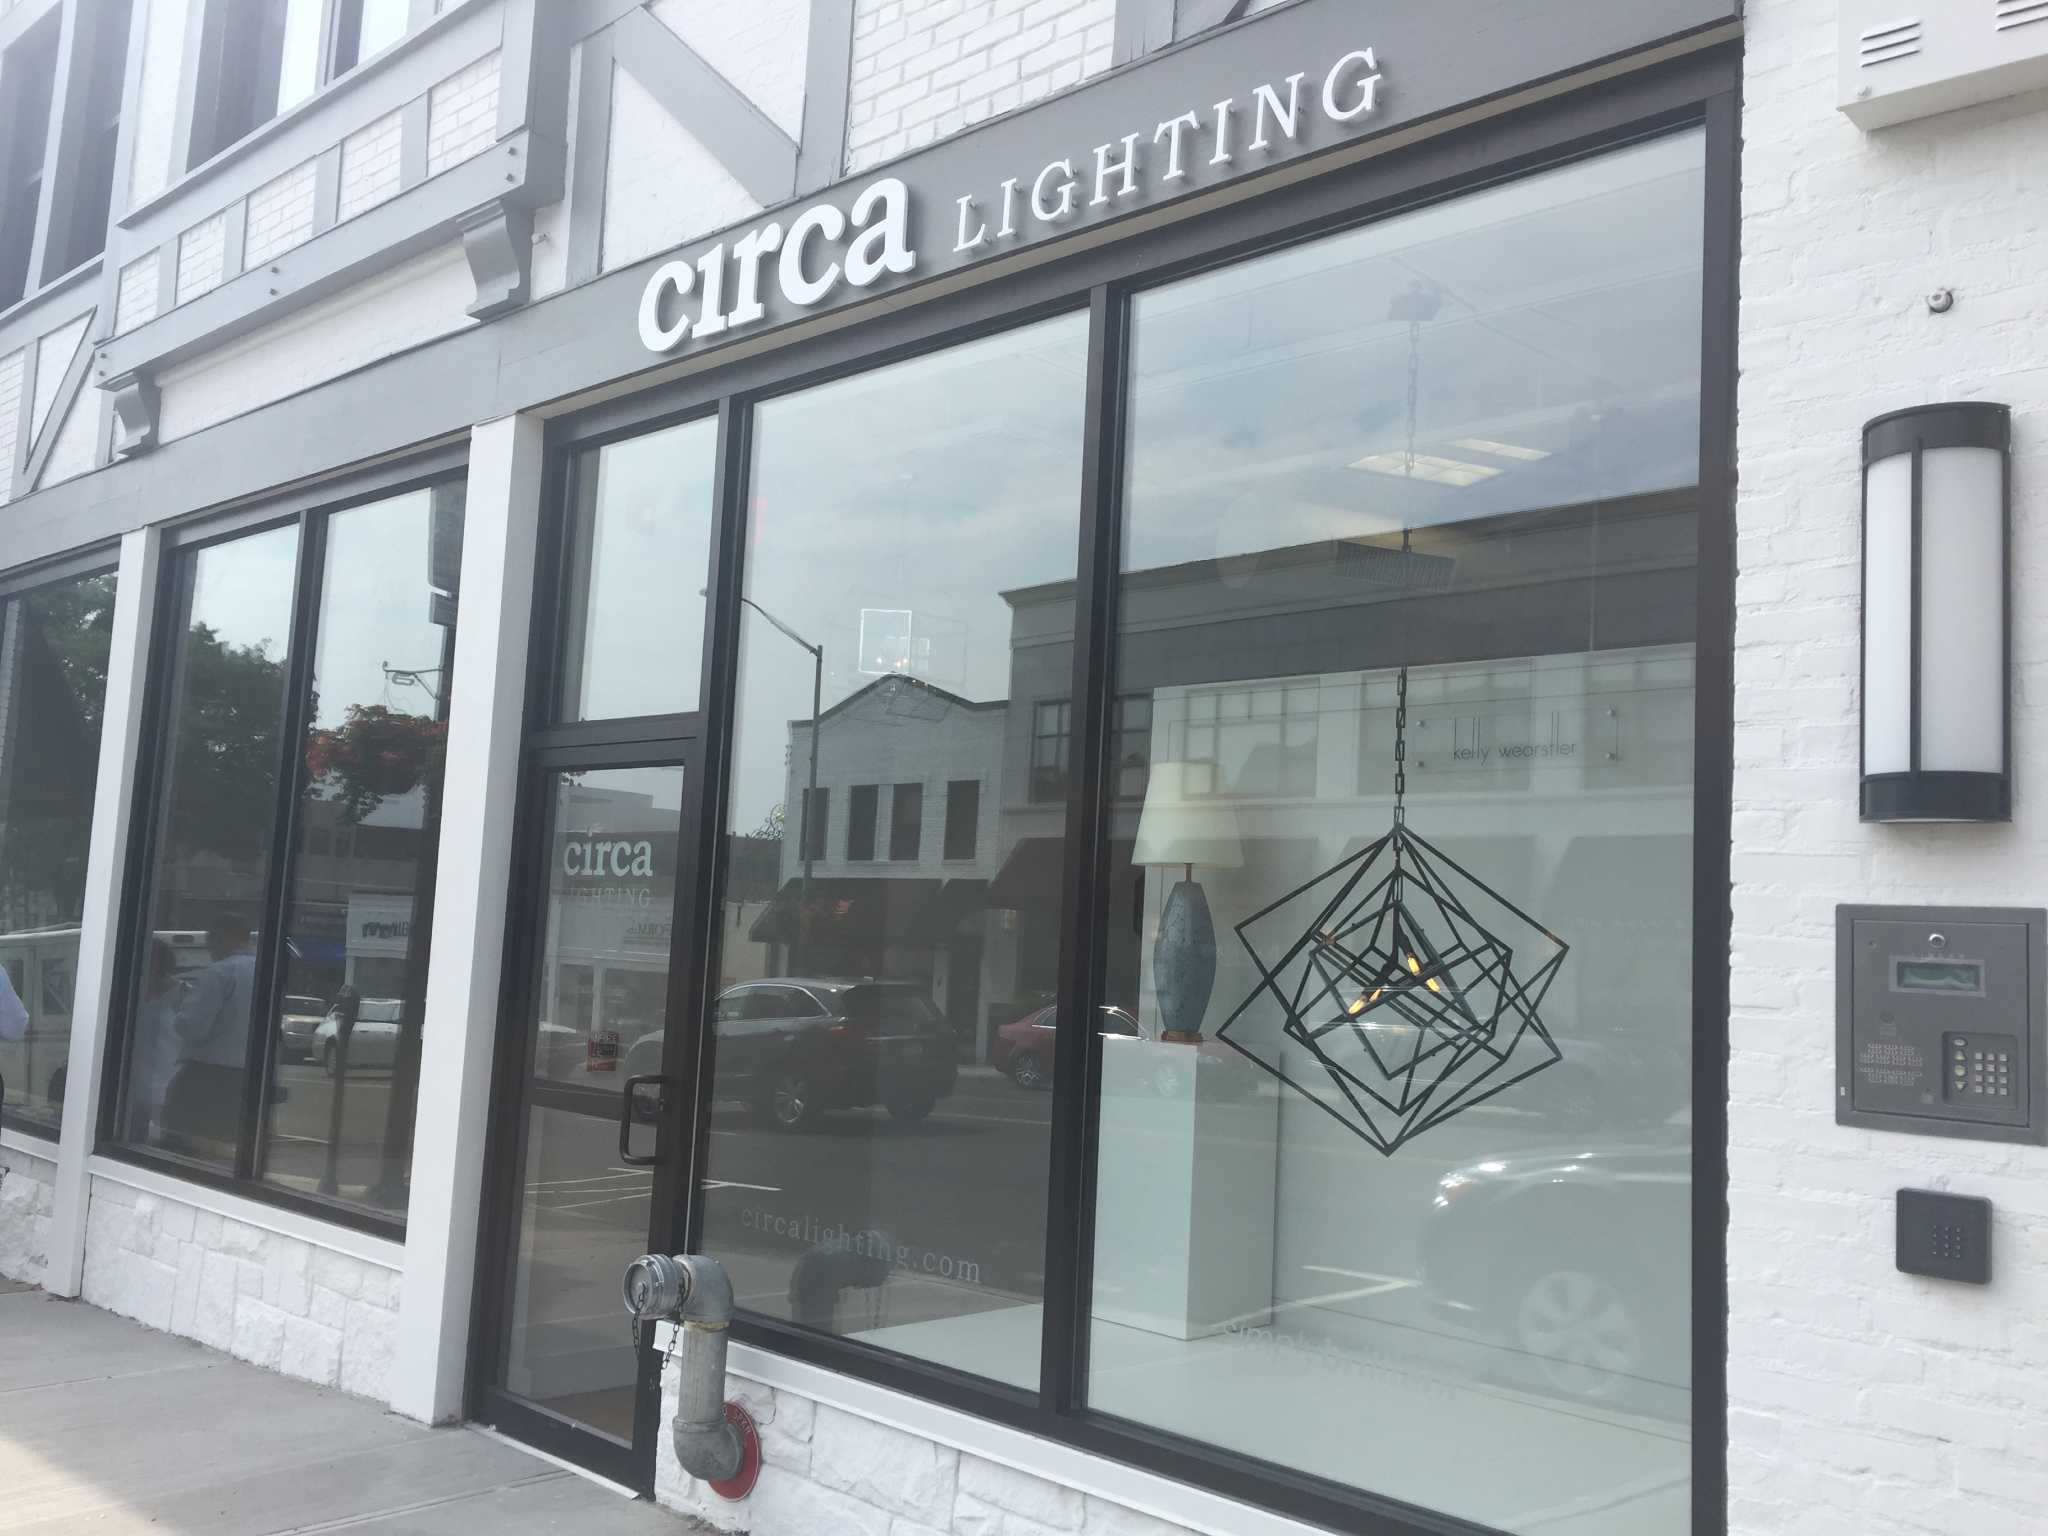 Circa lighting opens newest showroom in greenwich